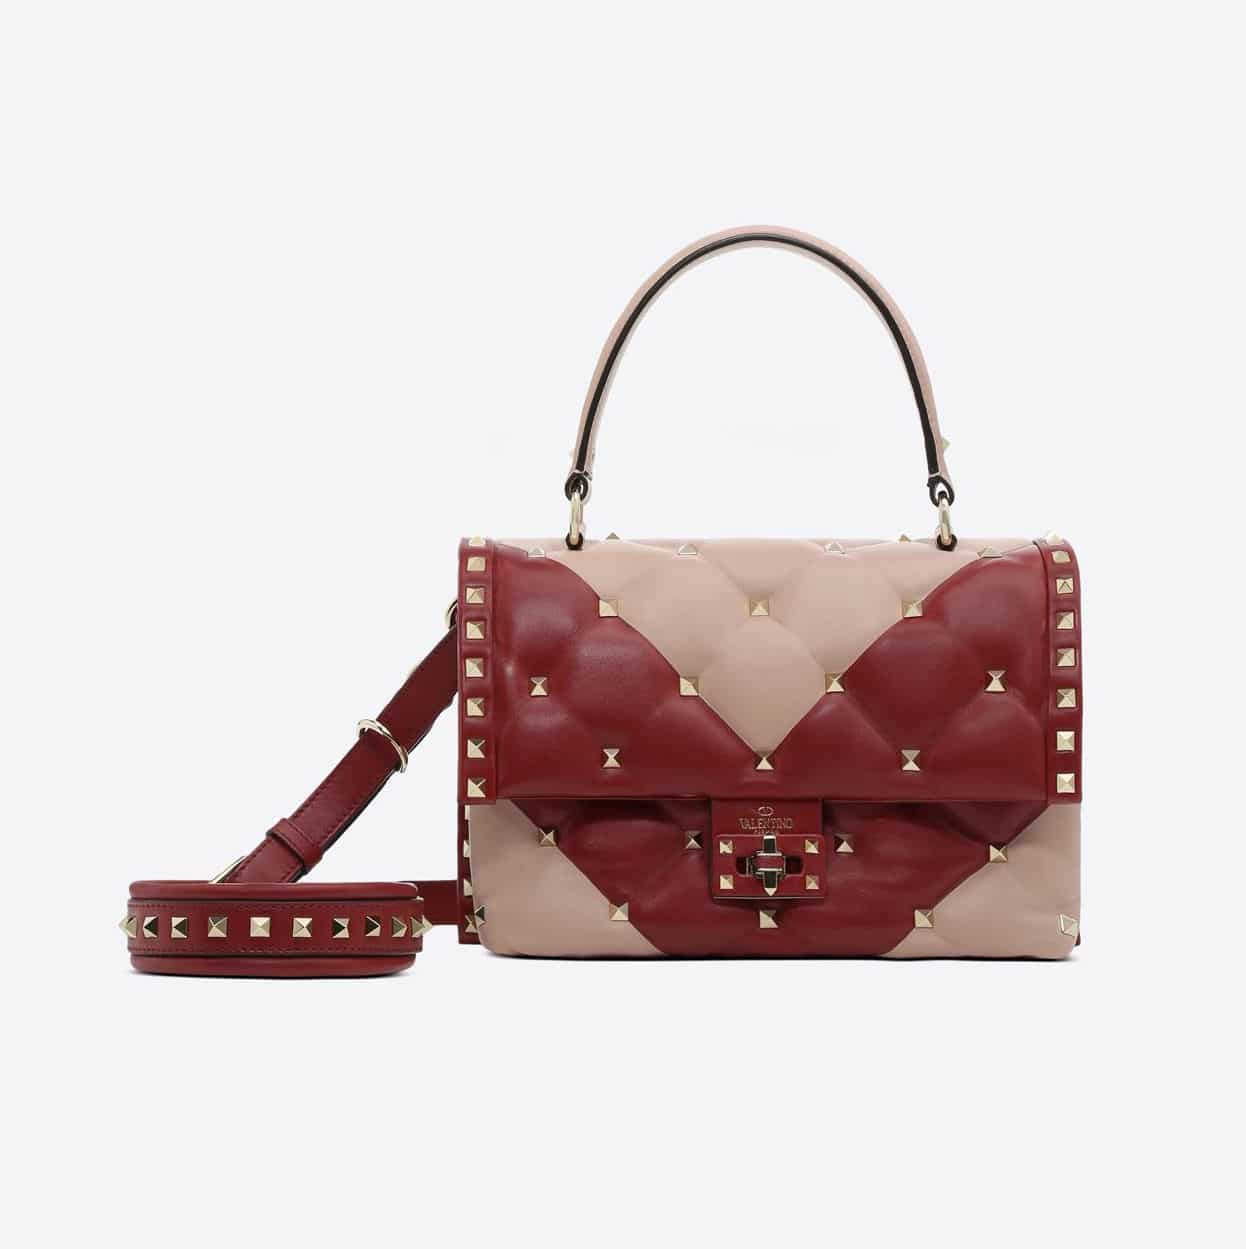 fe008ee107b Valentino Bag Price List Reference Guide | Spotted Fashion